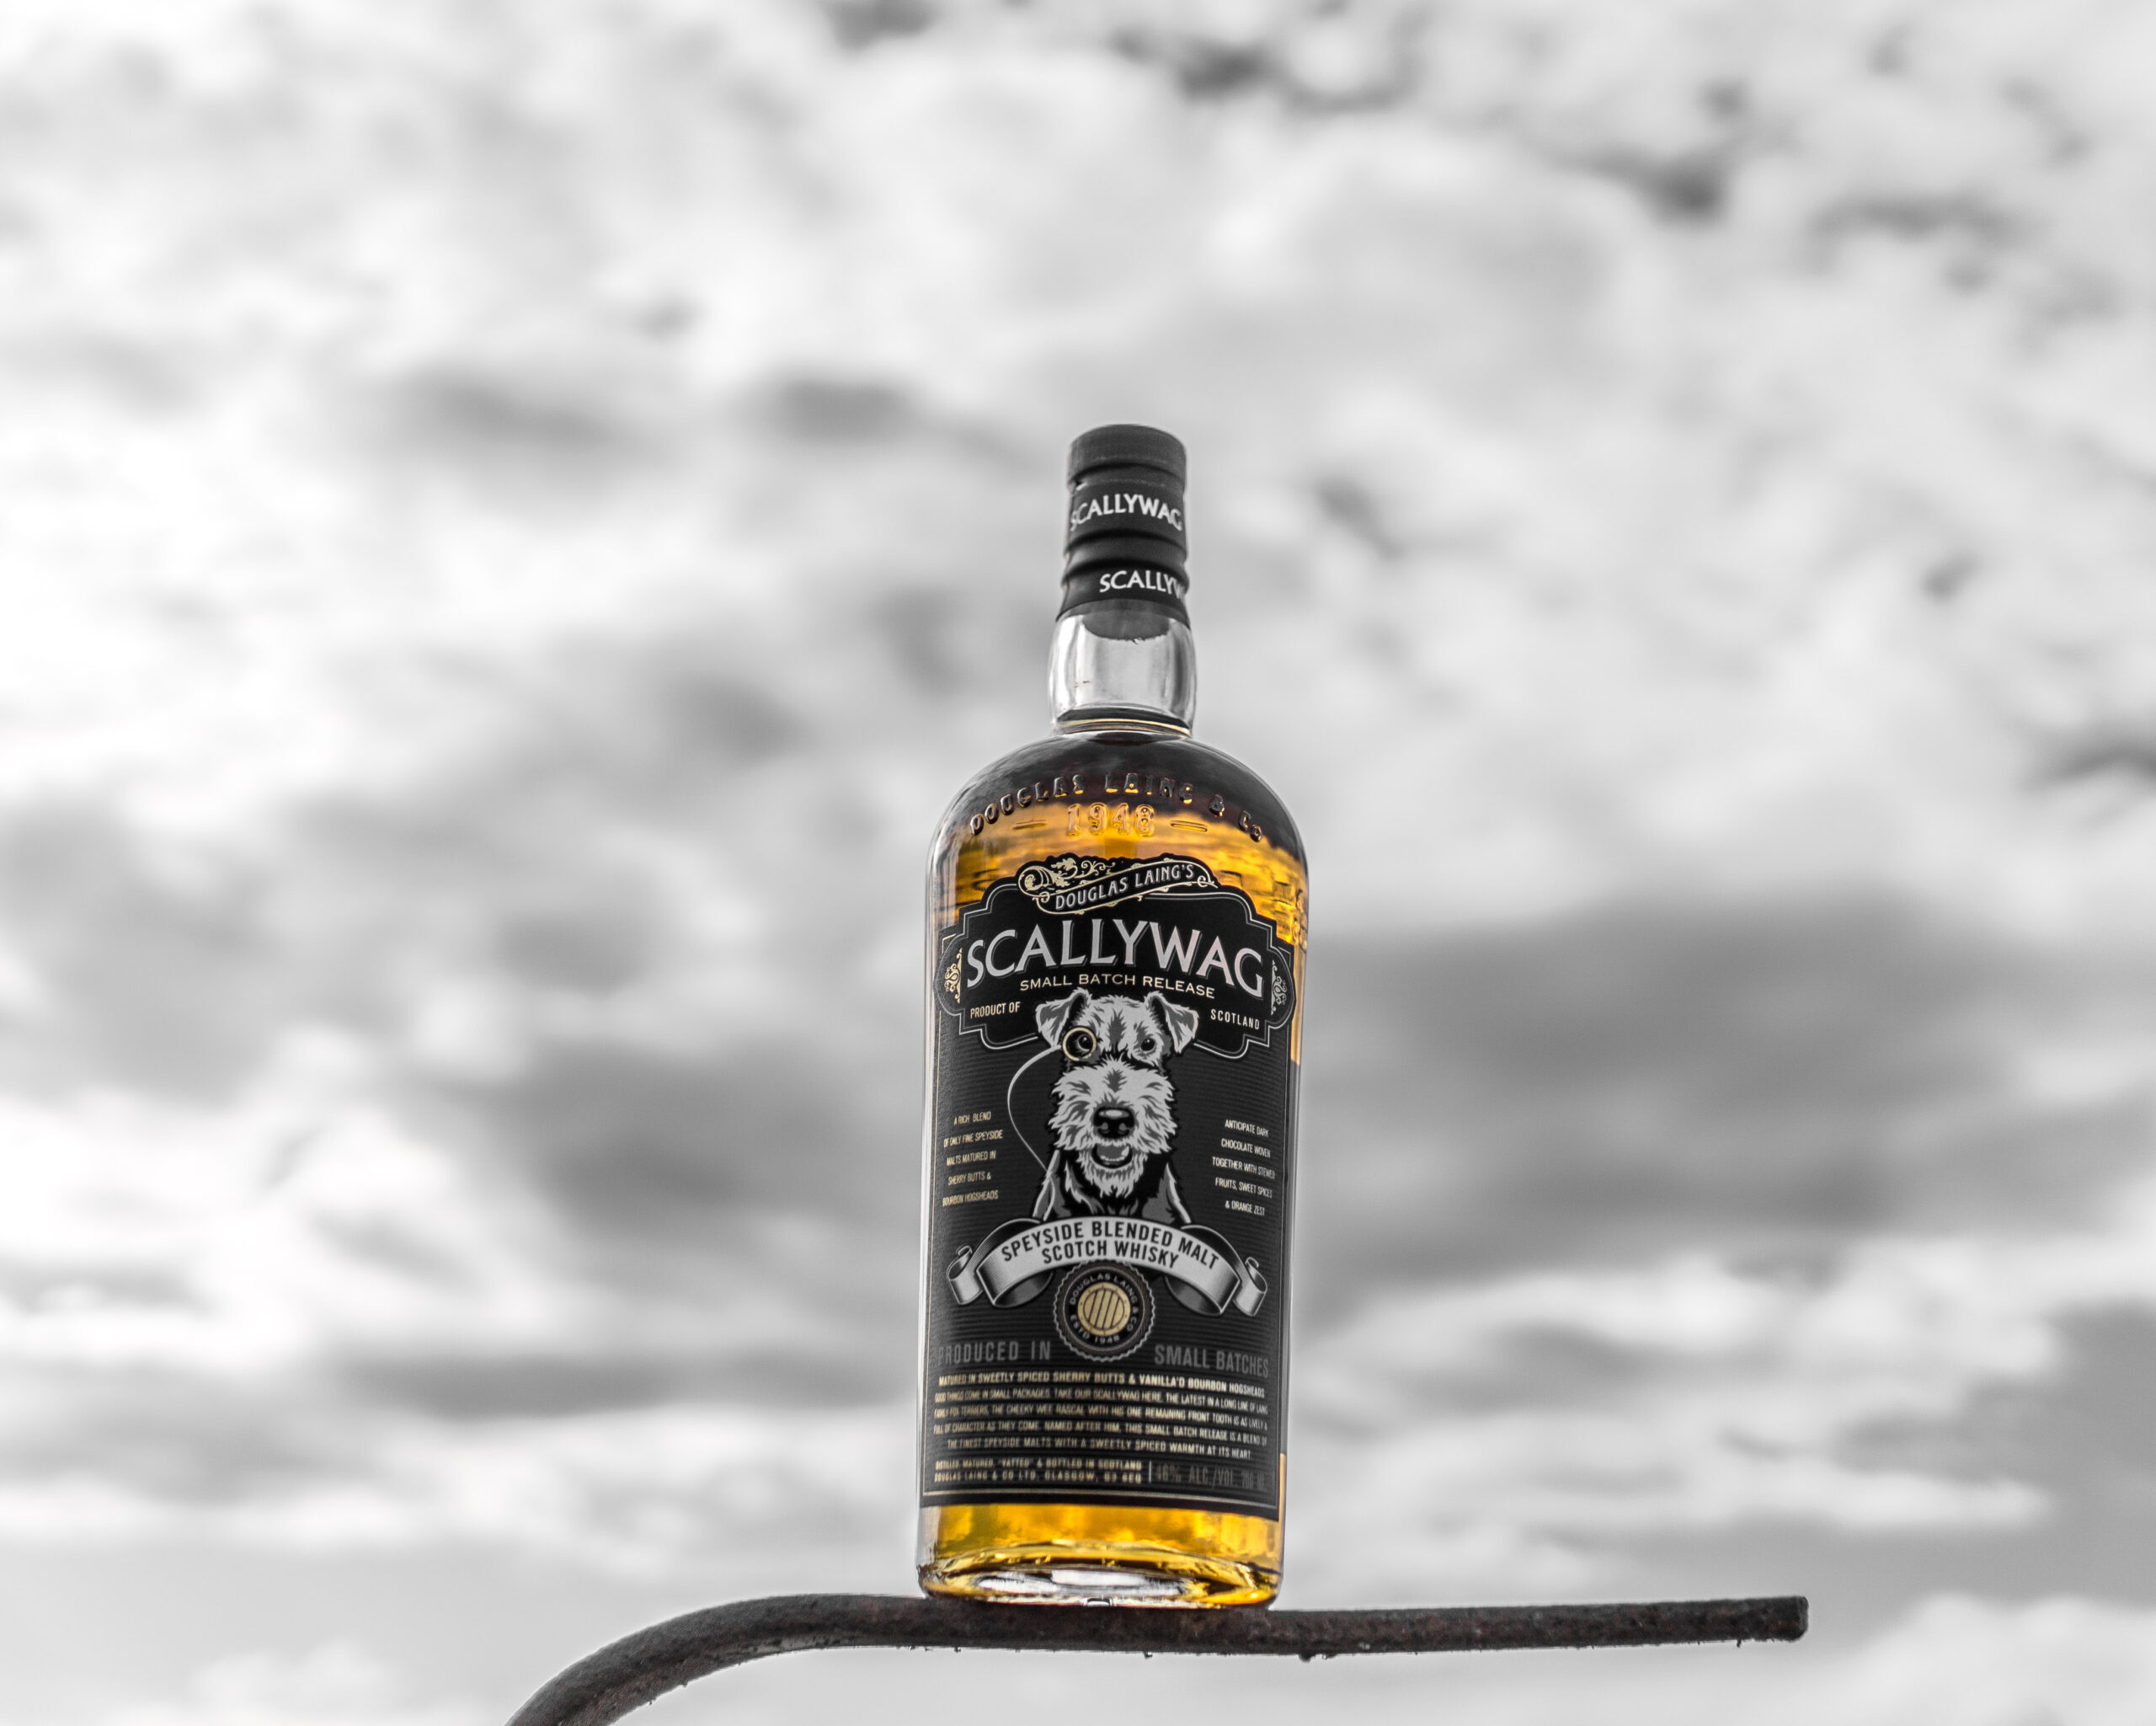 Scallywag Small batch release, Speyside blended Malt